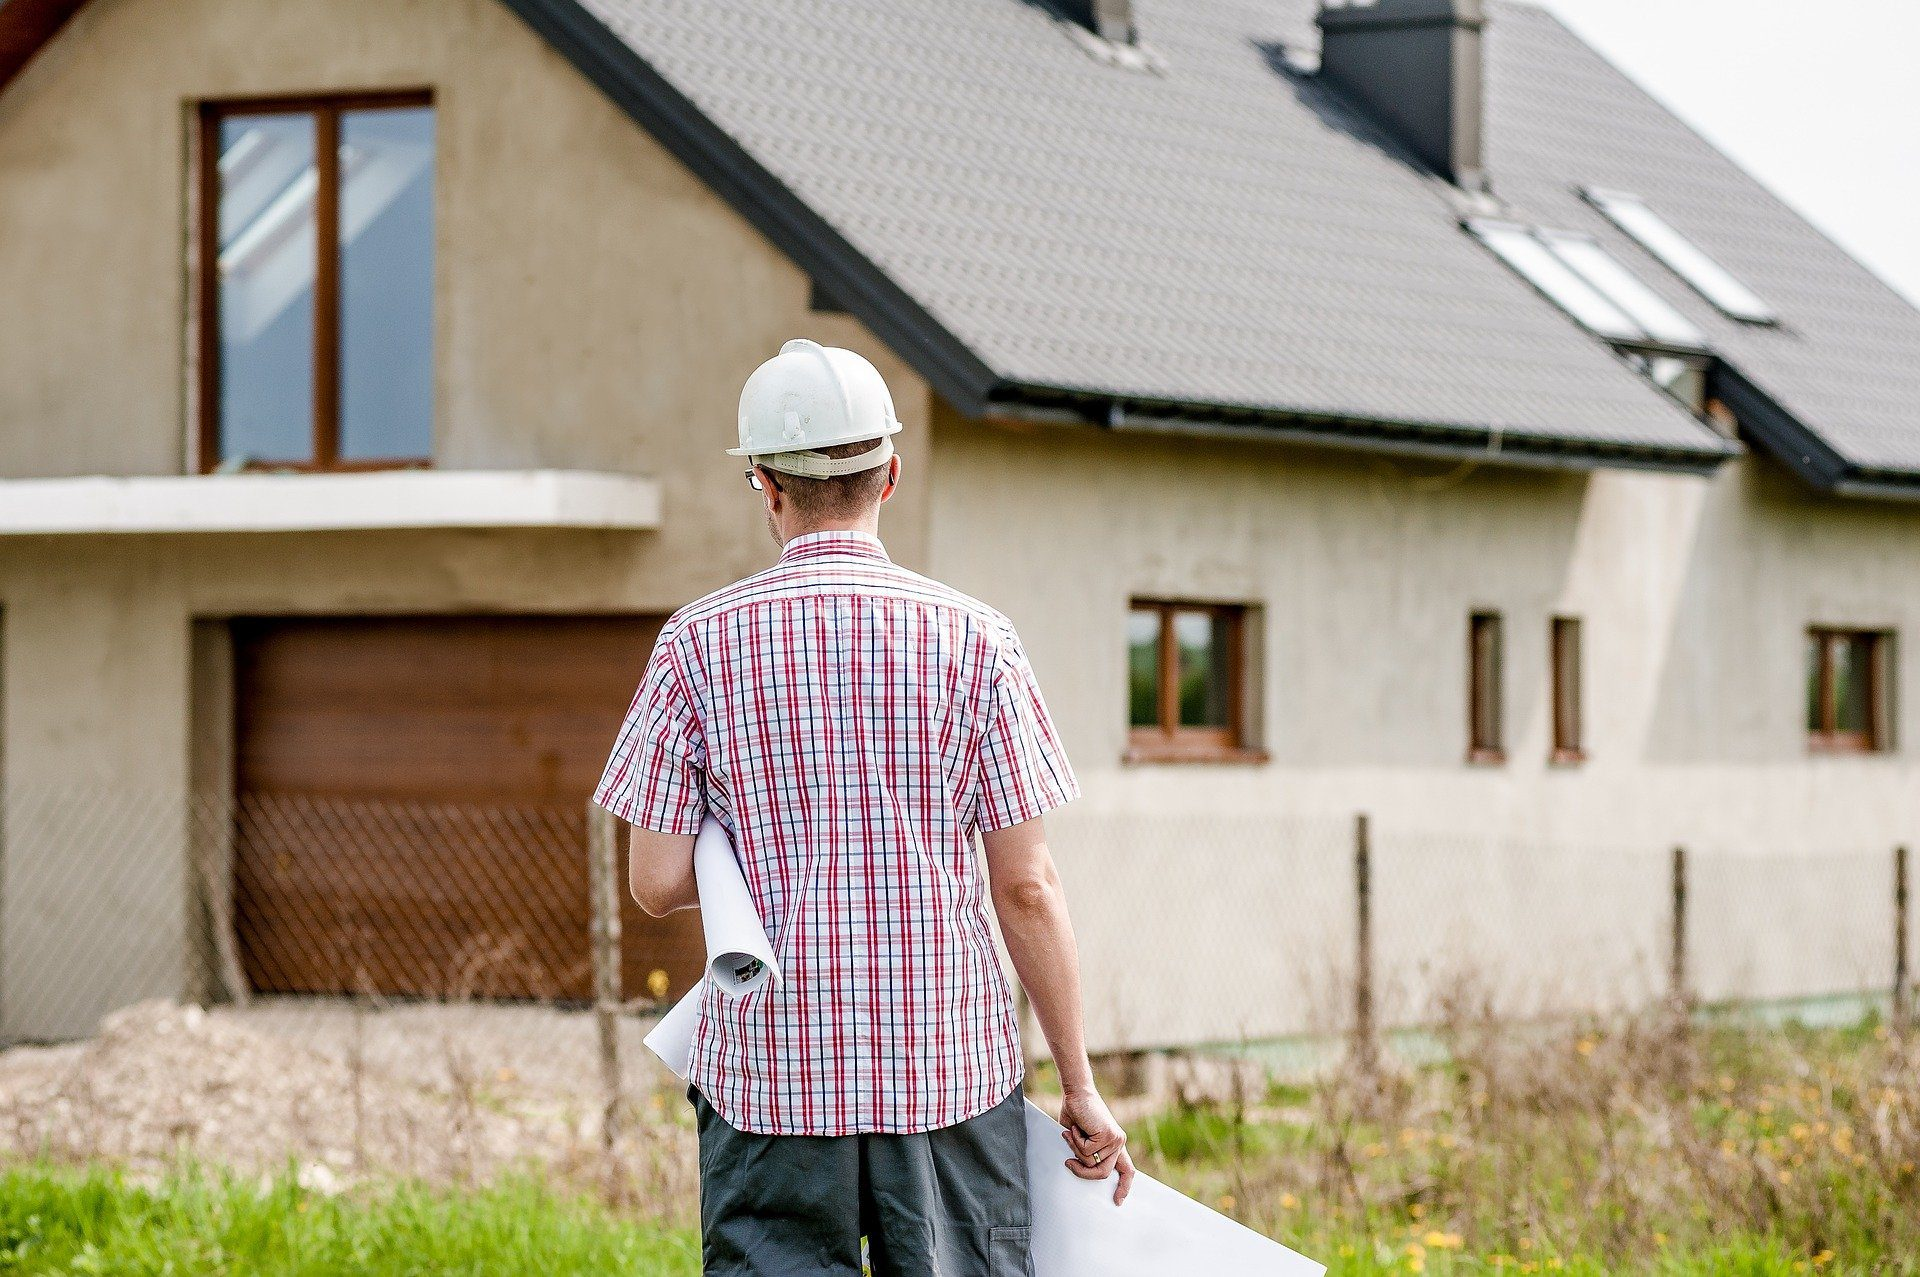 Renovation Guide: 8 Things to Consider When Planning a House Extension